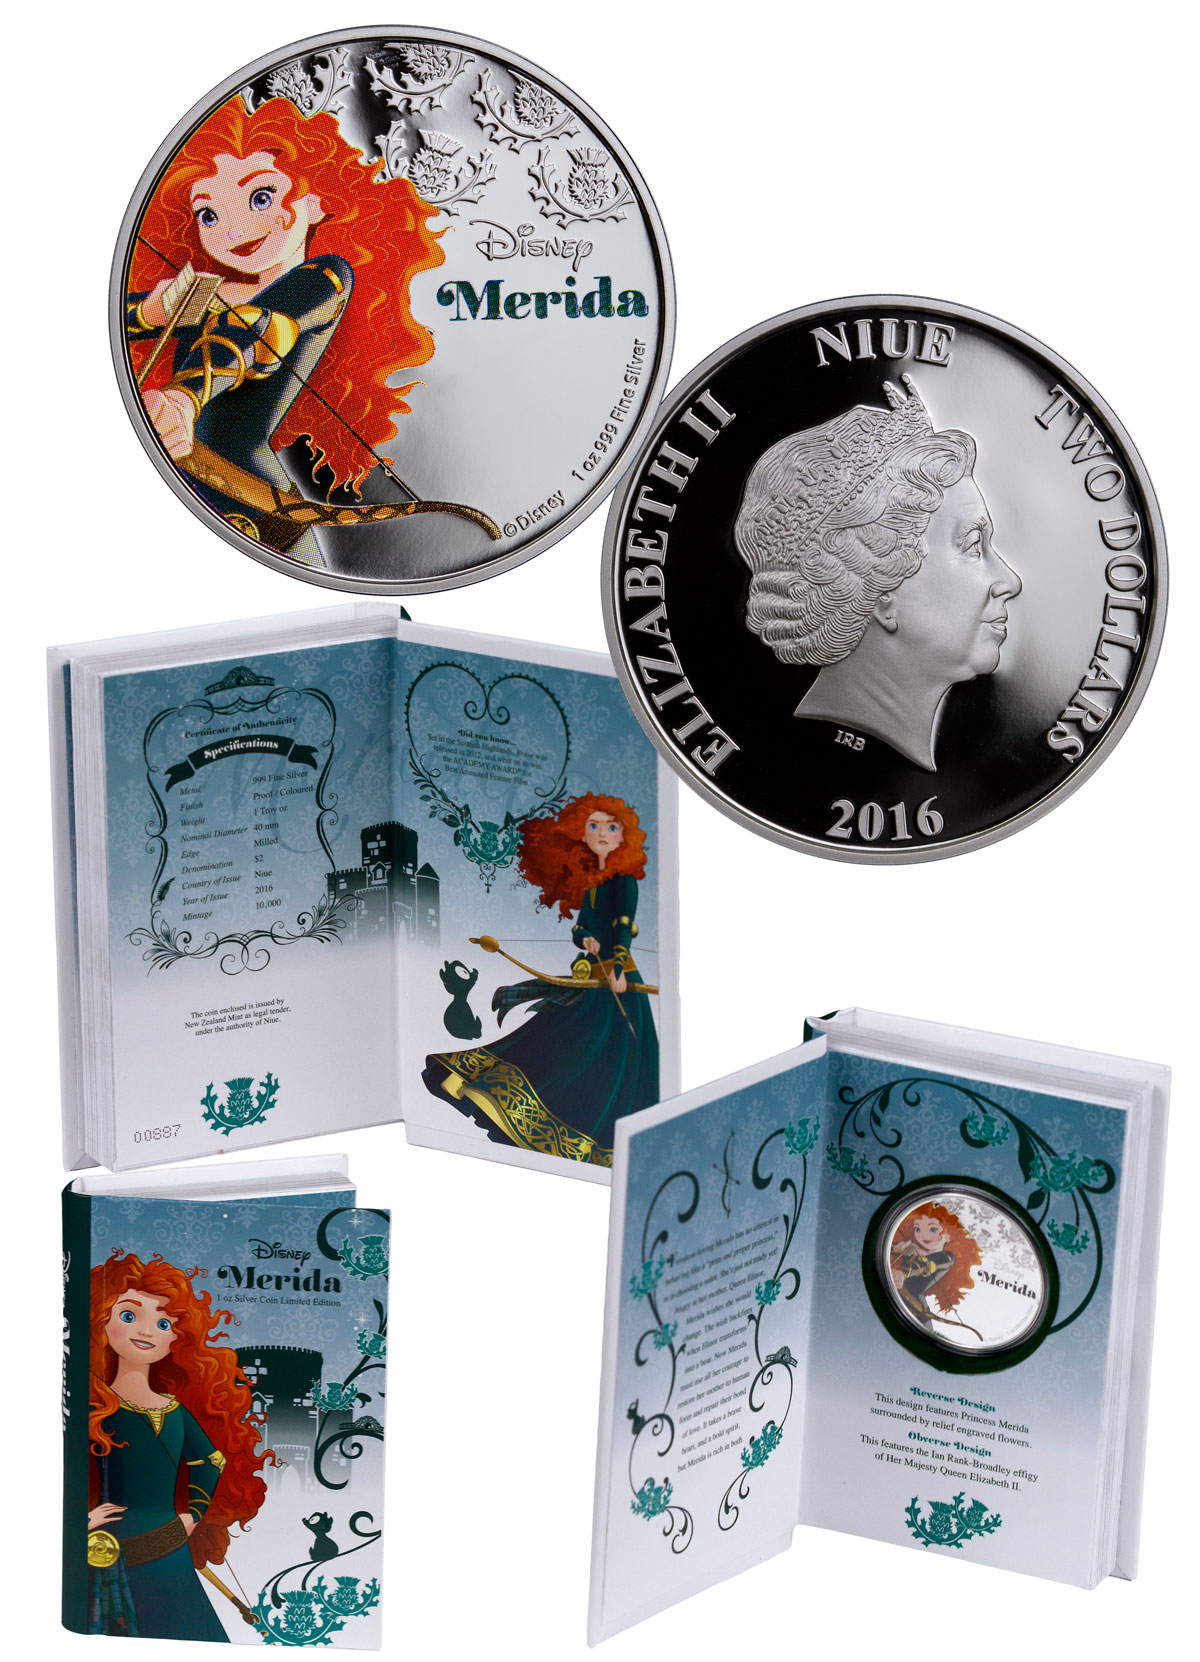 2016 Niue Disney Princess - Merida 1 oz Silver Colorized Proof $2 GEM Proof OGP